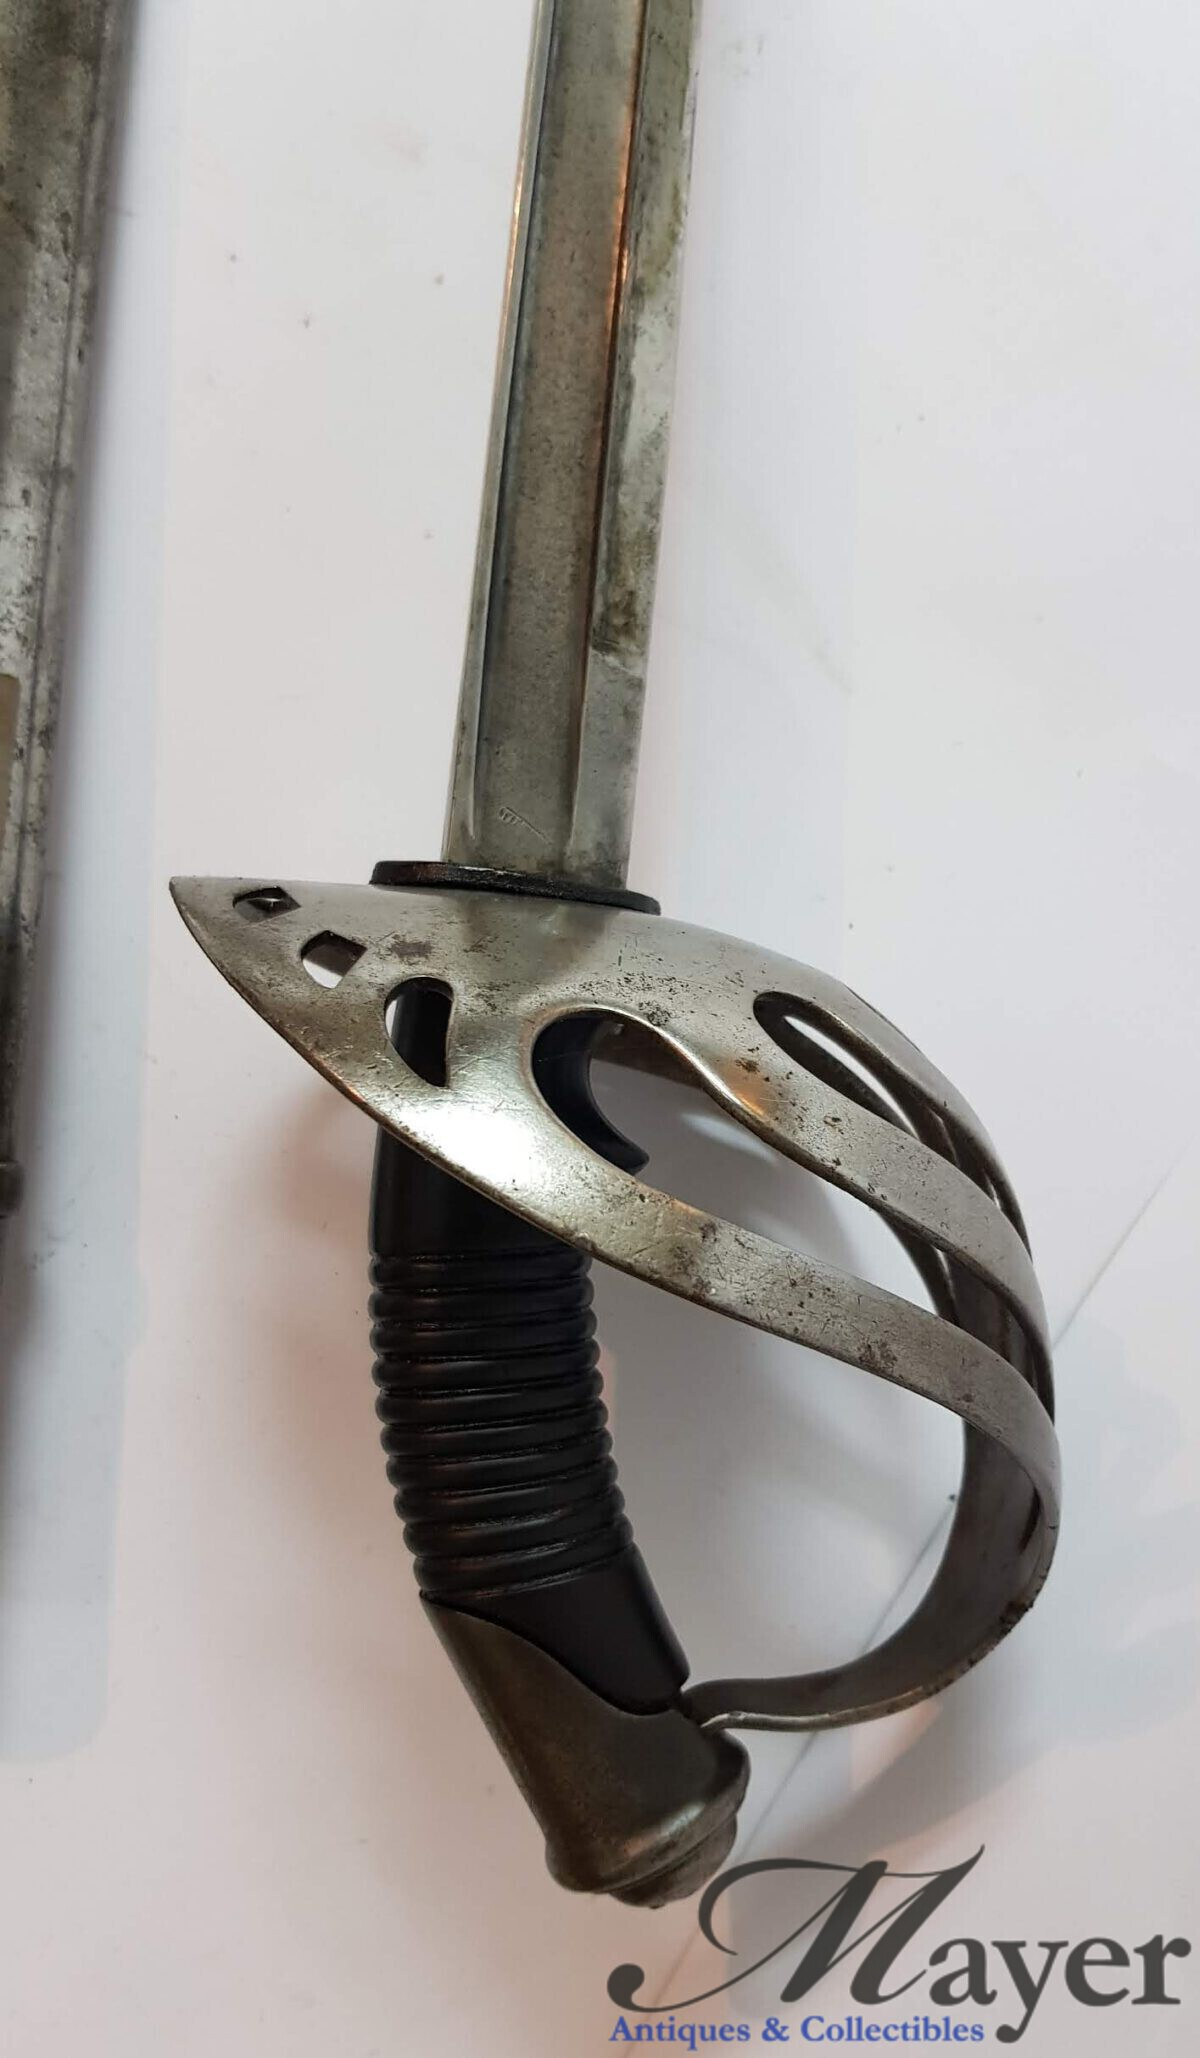 Chilean Sabre Made By Châtellerault Arms